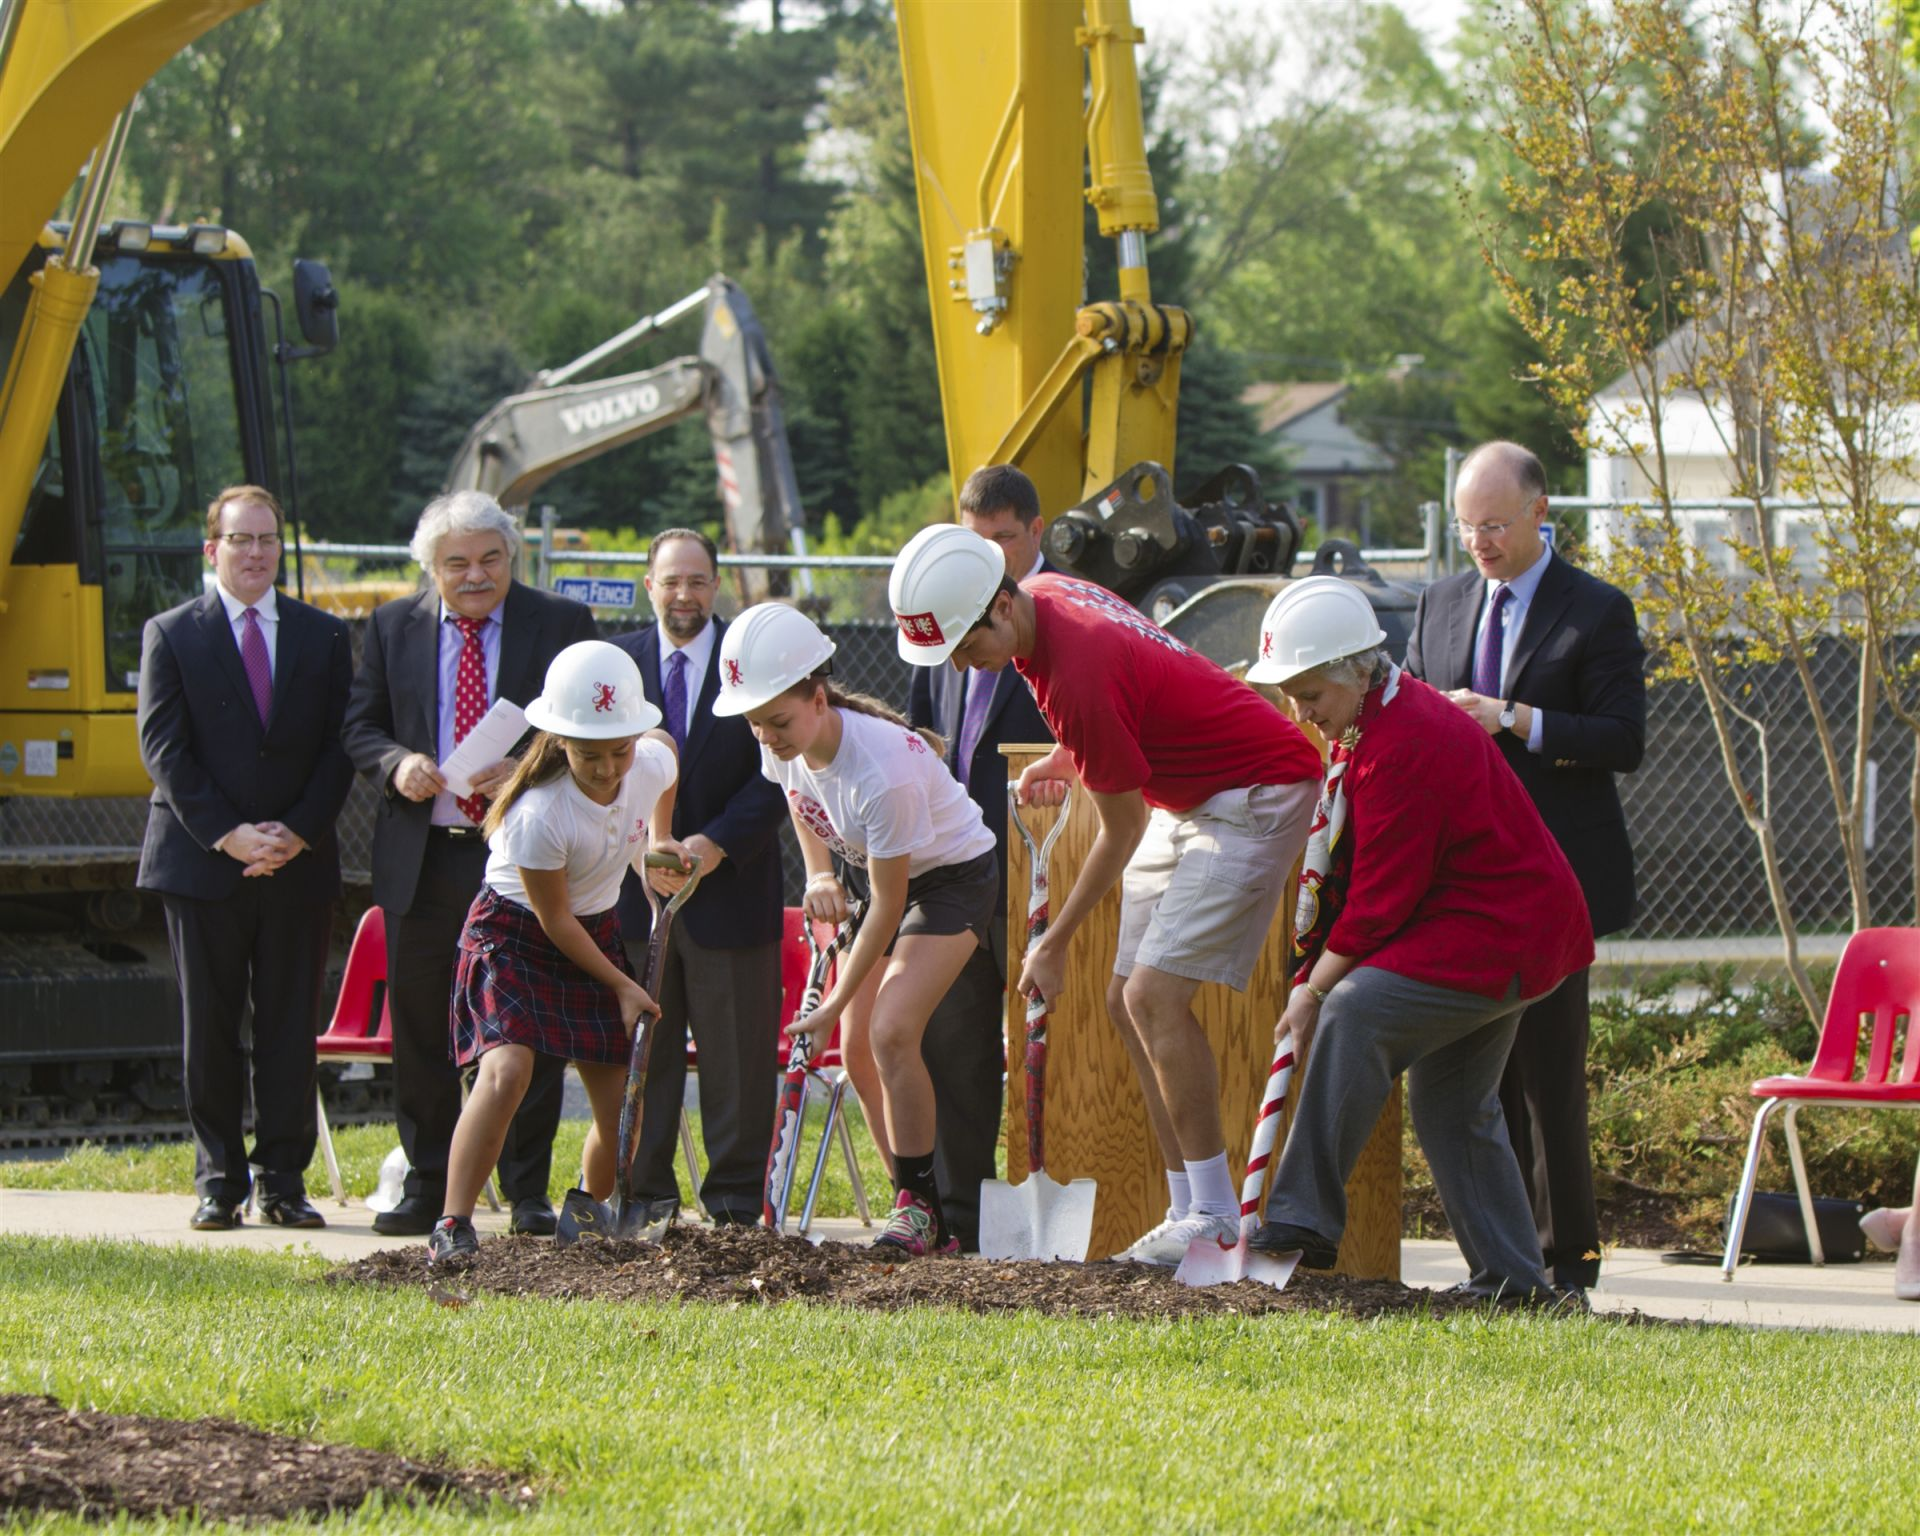 Breaking ground for the Student Center on the Postoak campus - St. Andrew's Episcopal School